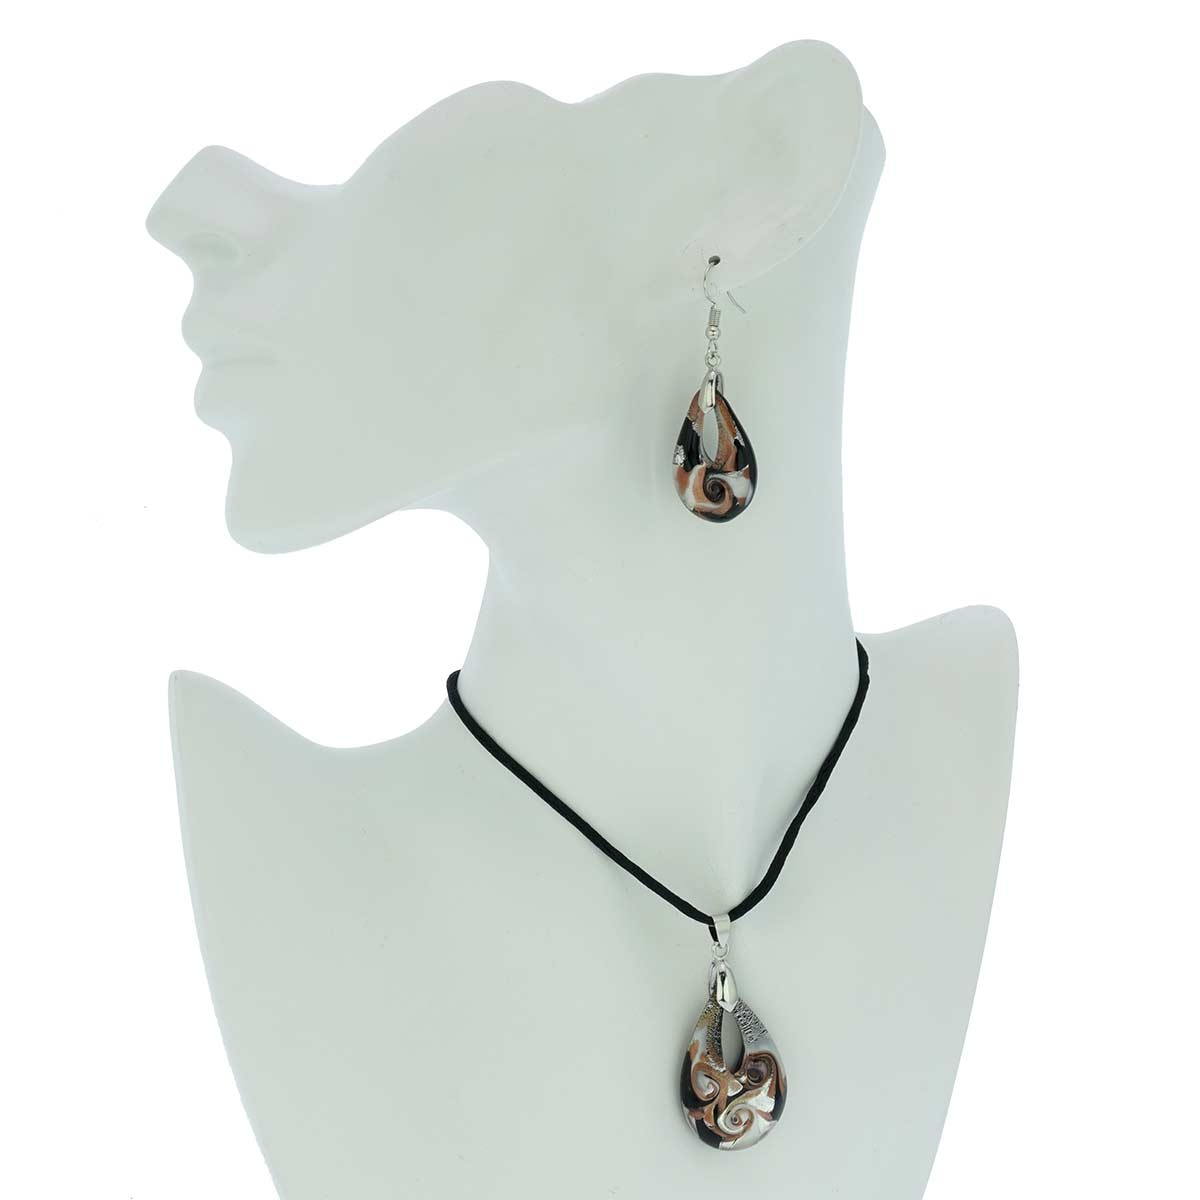 Blown Glass Lampwork Murano Pendant Black, Silver and Copper Necklace and Earrings Set